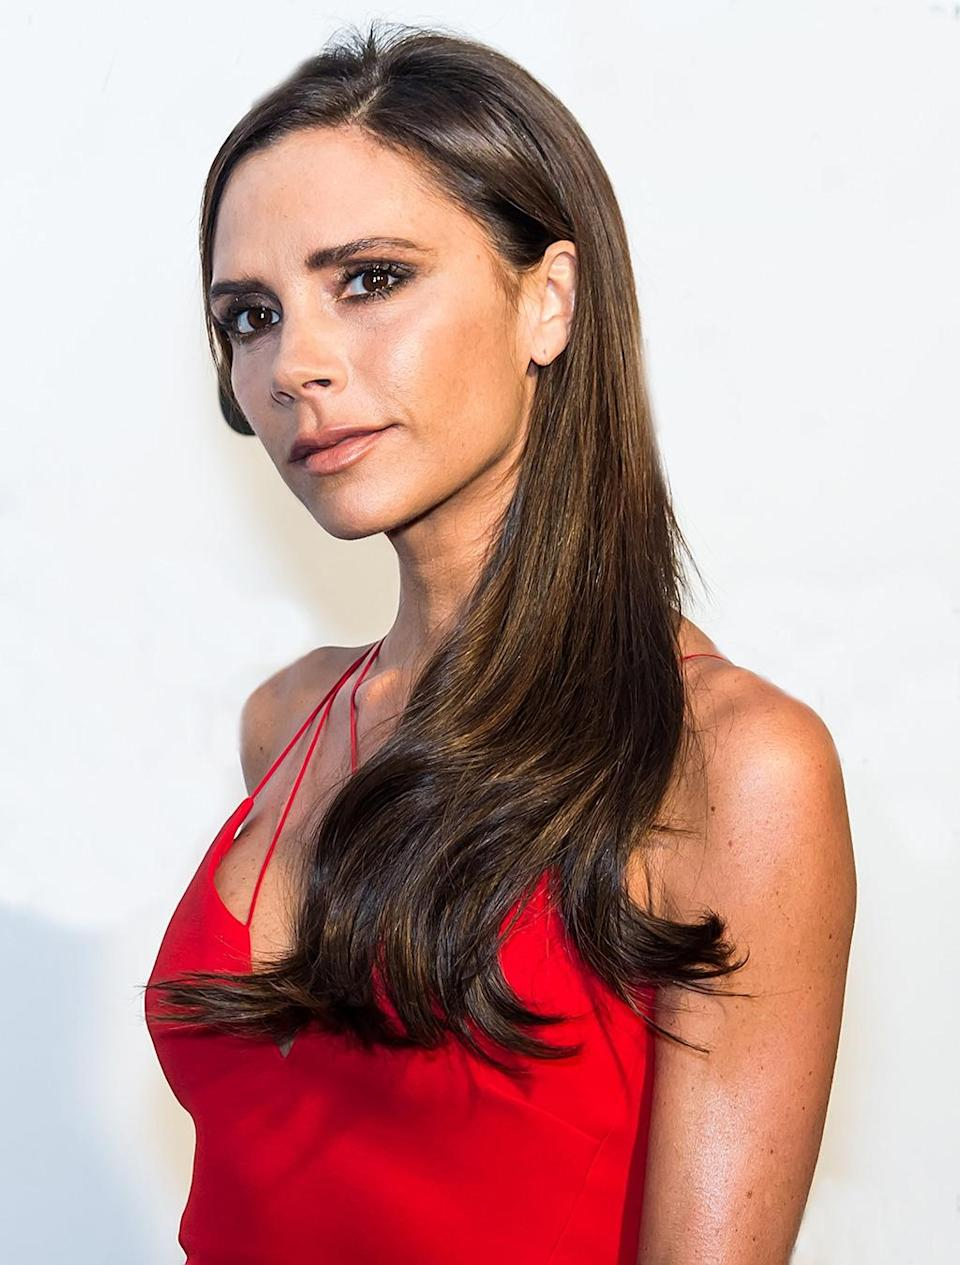 """<p><b>Victoria Beckham</b></p><p>Who knew that smearing bird poop on your face could give you such a glow? Victoria Beckham and her husband, David Beckham, <a href=""""https://www.google.co.th/url?sa=t&rct=j&q=&esrc=s&source=web&cd=1&ved=0ahUKEwjsn7uDmZjMAhVh26YKHaWfCqMQFggaMAA&url=http%3A%2F%2Fwww.dailymail.co.uk%2Ffemail%2Fbeauty%2Farticle-1350741%2FIts-hailed-beauty-wonder-product-Victoria-Beckham-loves--bird-poo-face.html&usg=AFQjCNEruUYIKOKEC3Gve2-SyLTGFiGmVw"""" rel=""""nofollow noopener"""" target=""""_blank"""" data-ylk=""""slk:are said to be fans"""" class=""""link rapid-noclick-resp"""">are said to be fans</a> of a facial that uses Nightingale poop as it's main ingredient. Yes, a bird poop facial.<br></p>"""